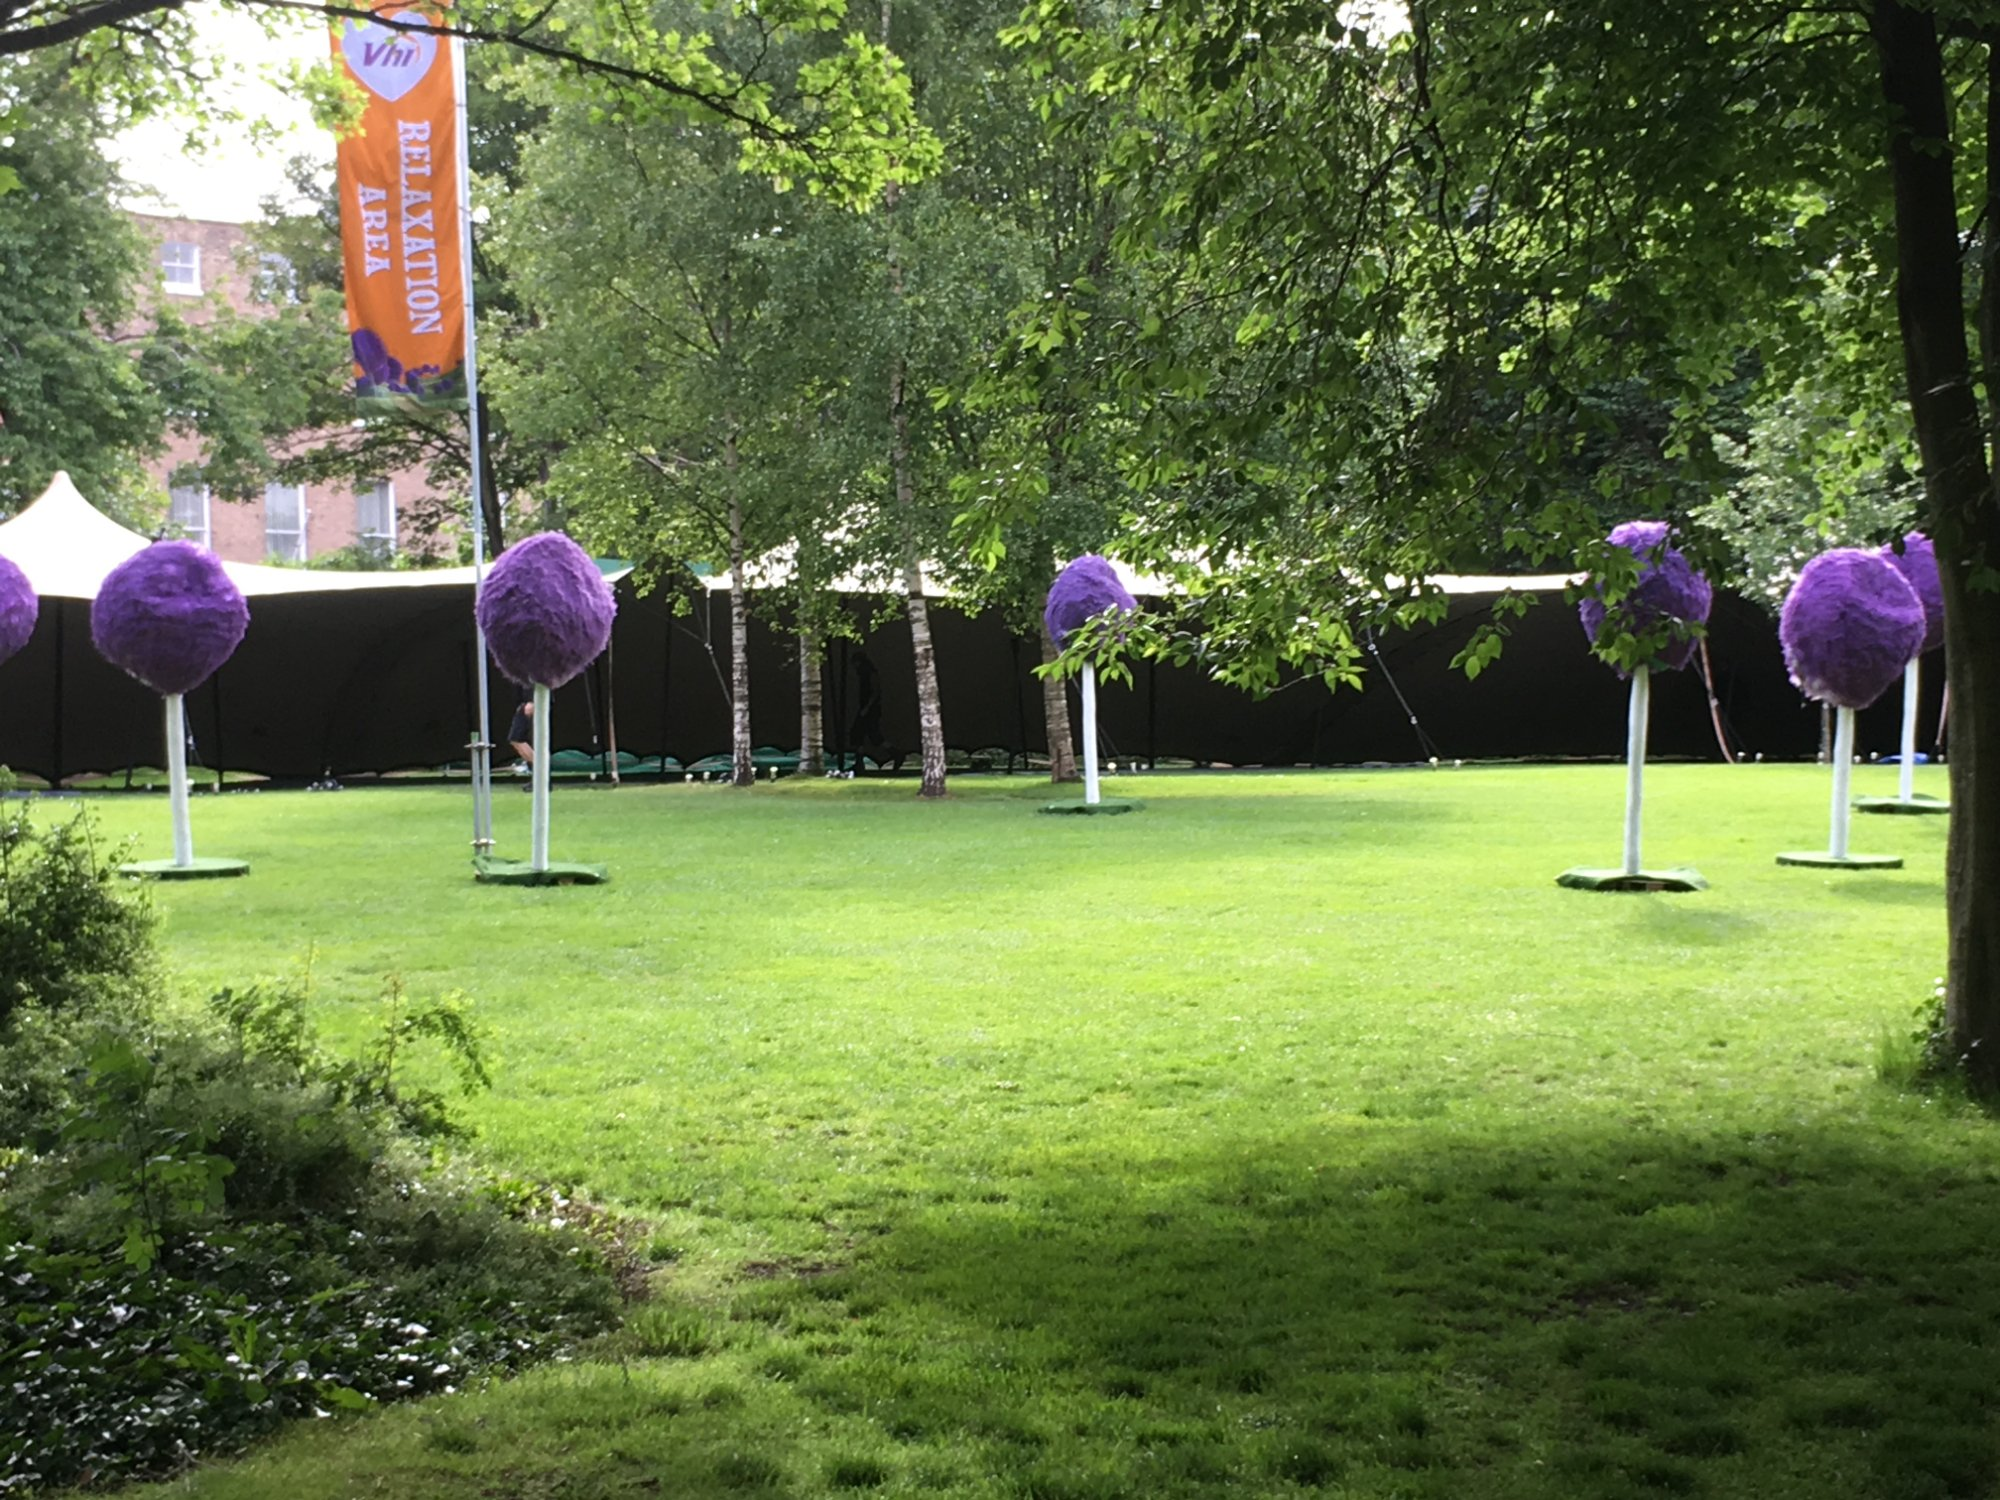 Inexplicable purple things in a Dublin park